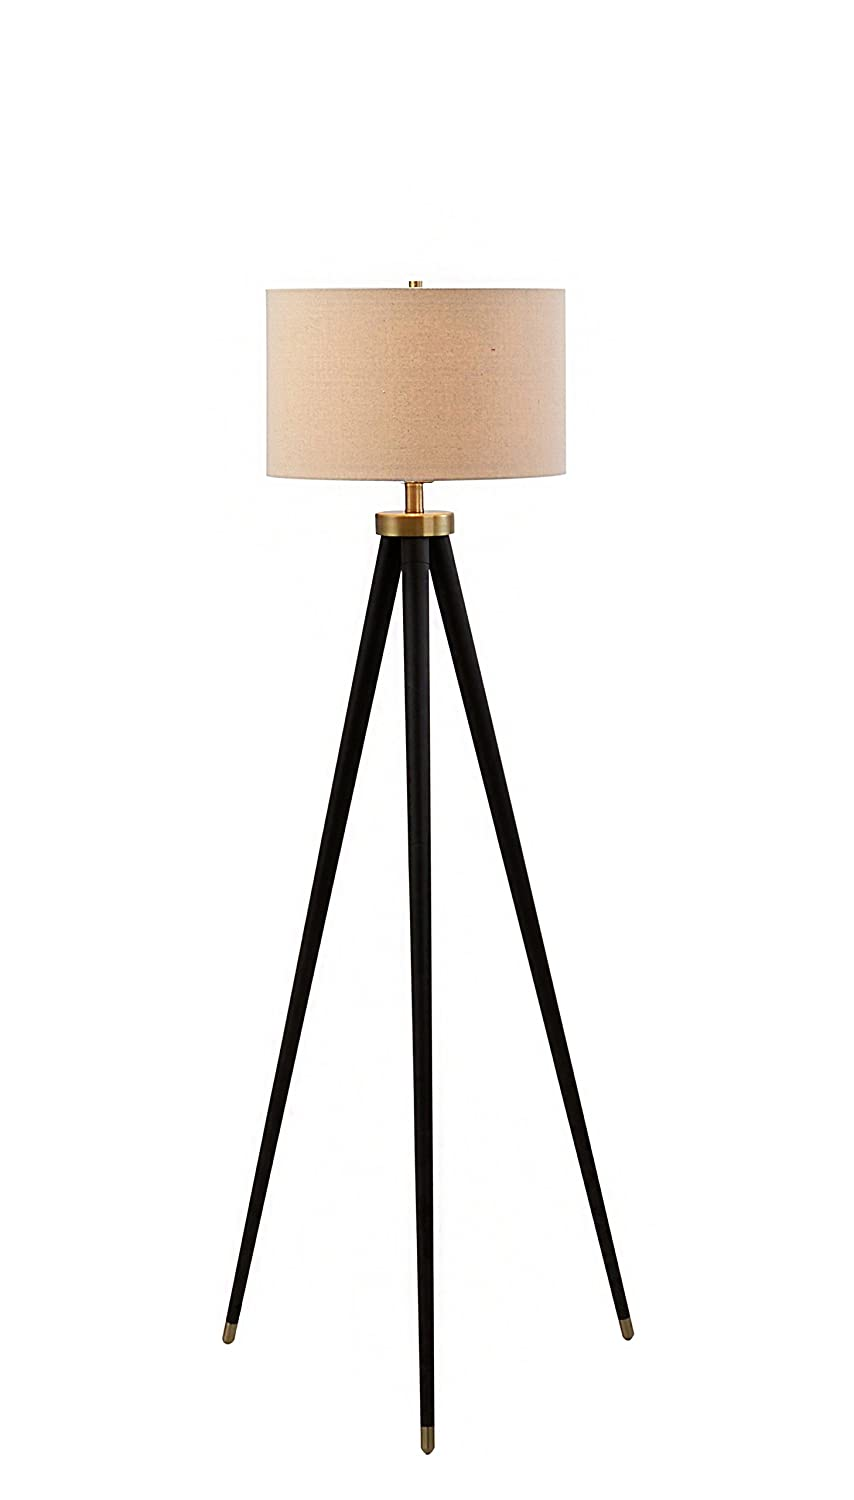 Catalina Lighting 19936-001 Contemporary 3-way Tripod Floor Lamp with Metal Accent Linen Shade, LED Bulb Included, Bronze Antique Brass Classic